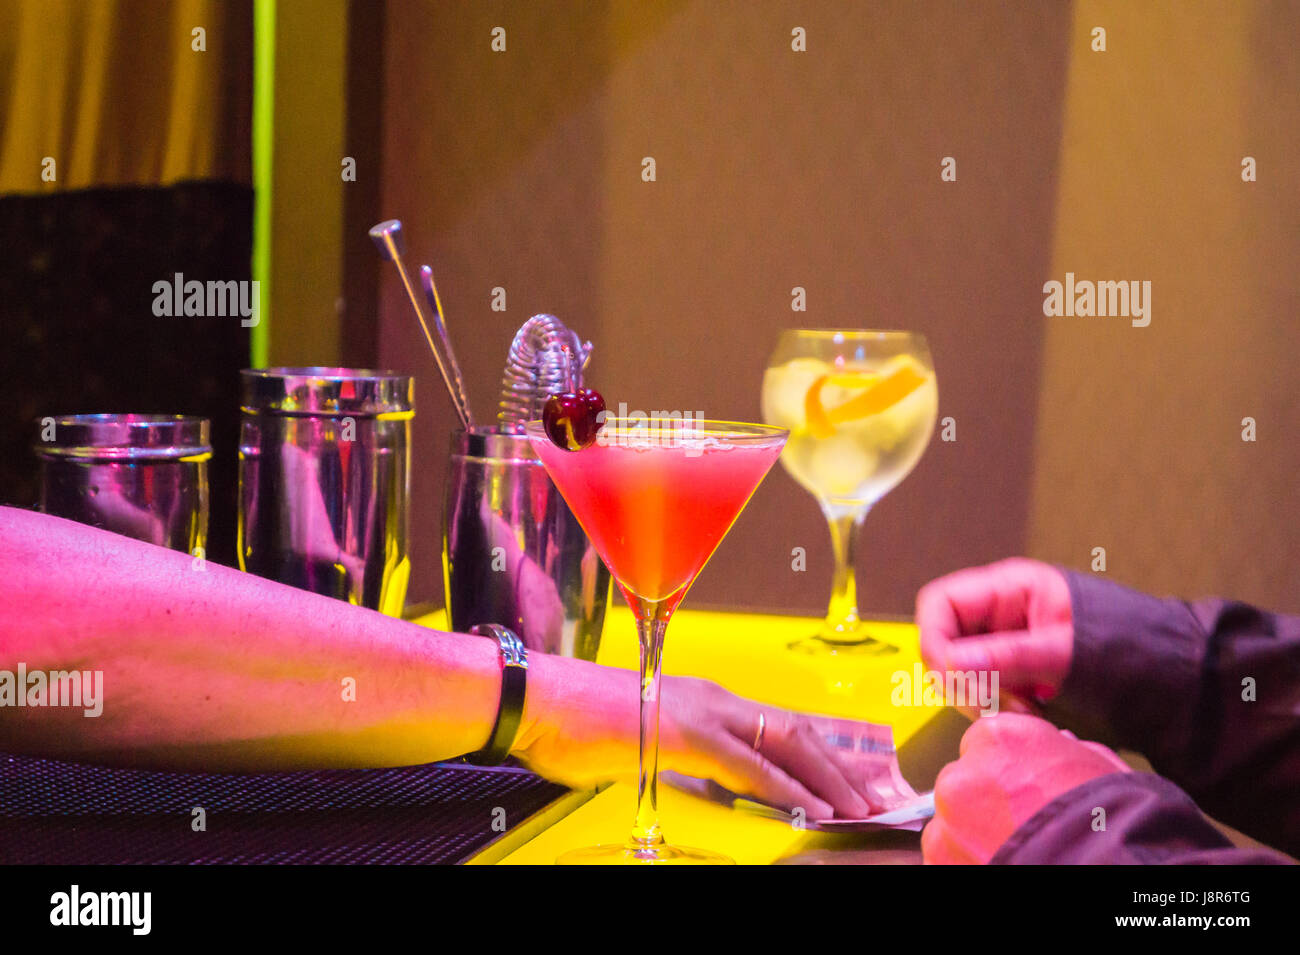 Paying for Cosmopolitan  and gin and tonic cocktails at Urban Cocktail Club bar, Oviedo Asturias Spain - Stock Image